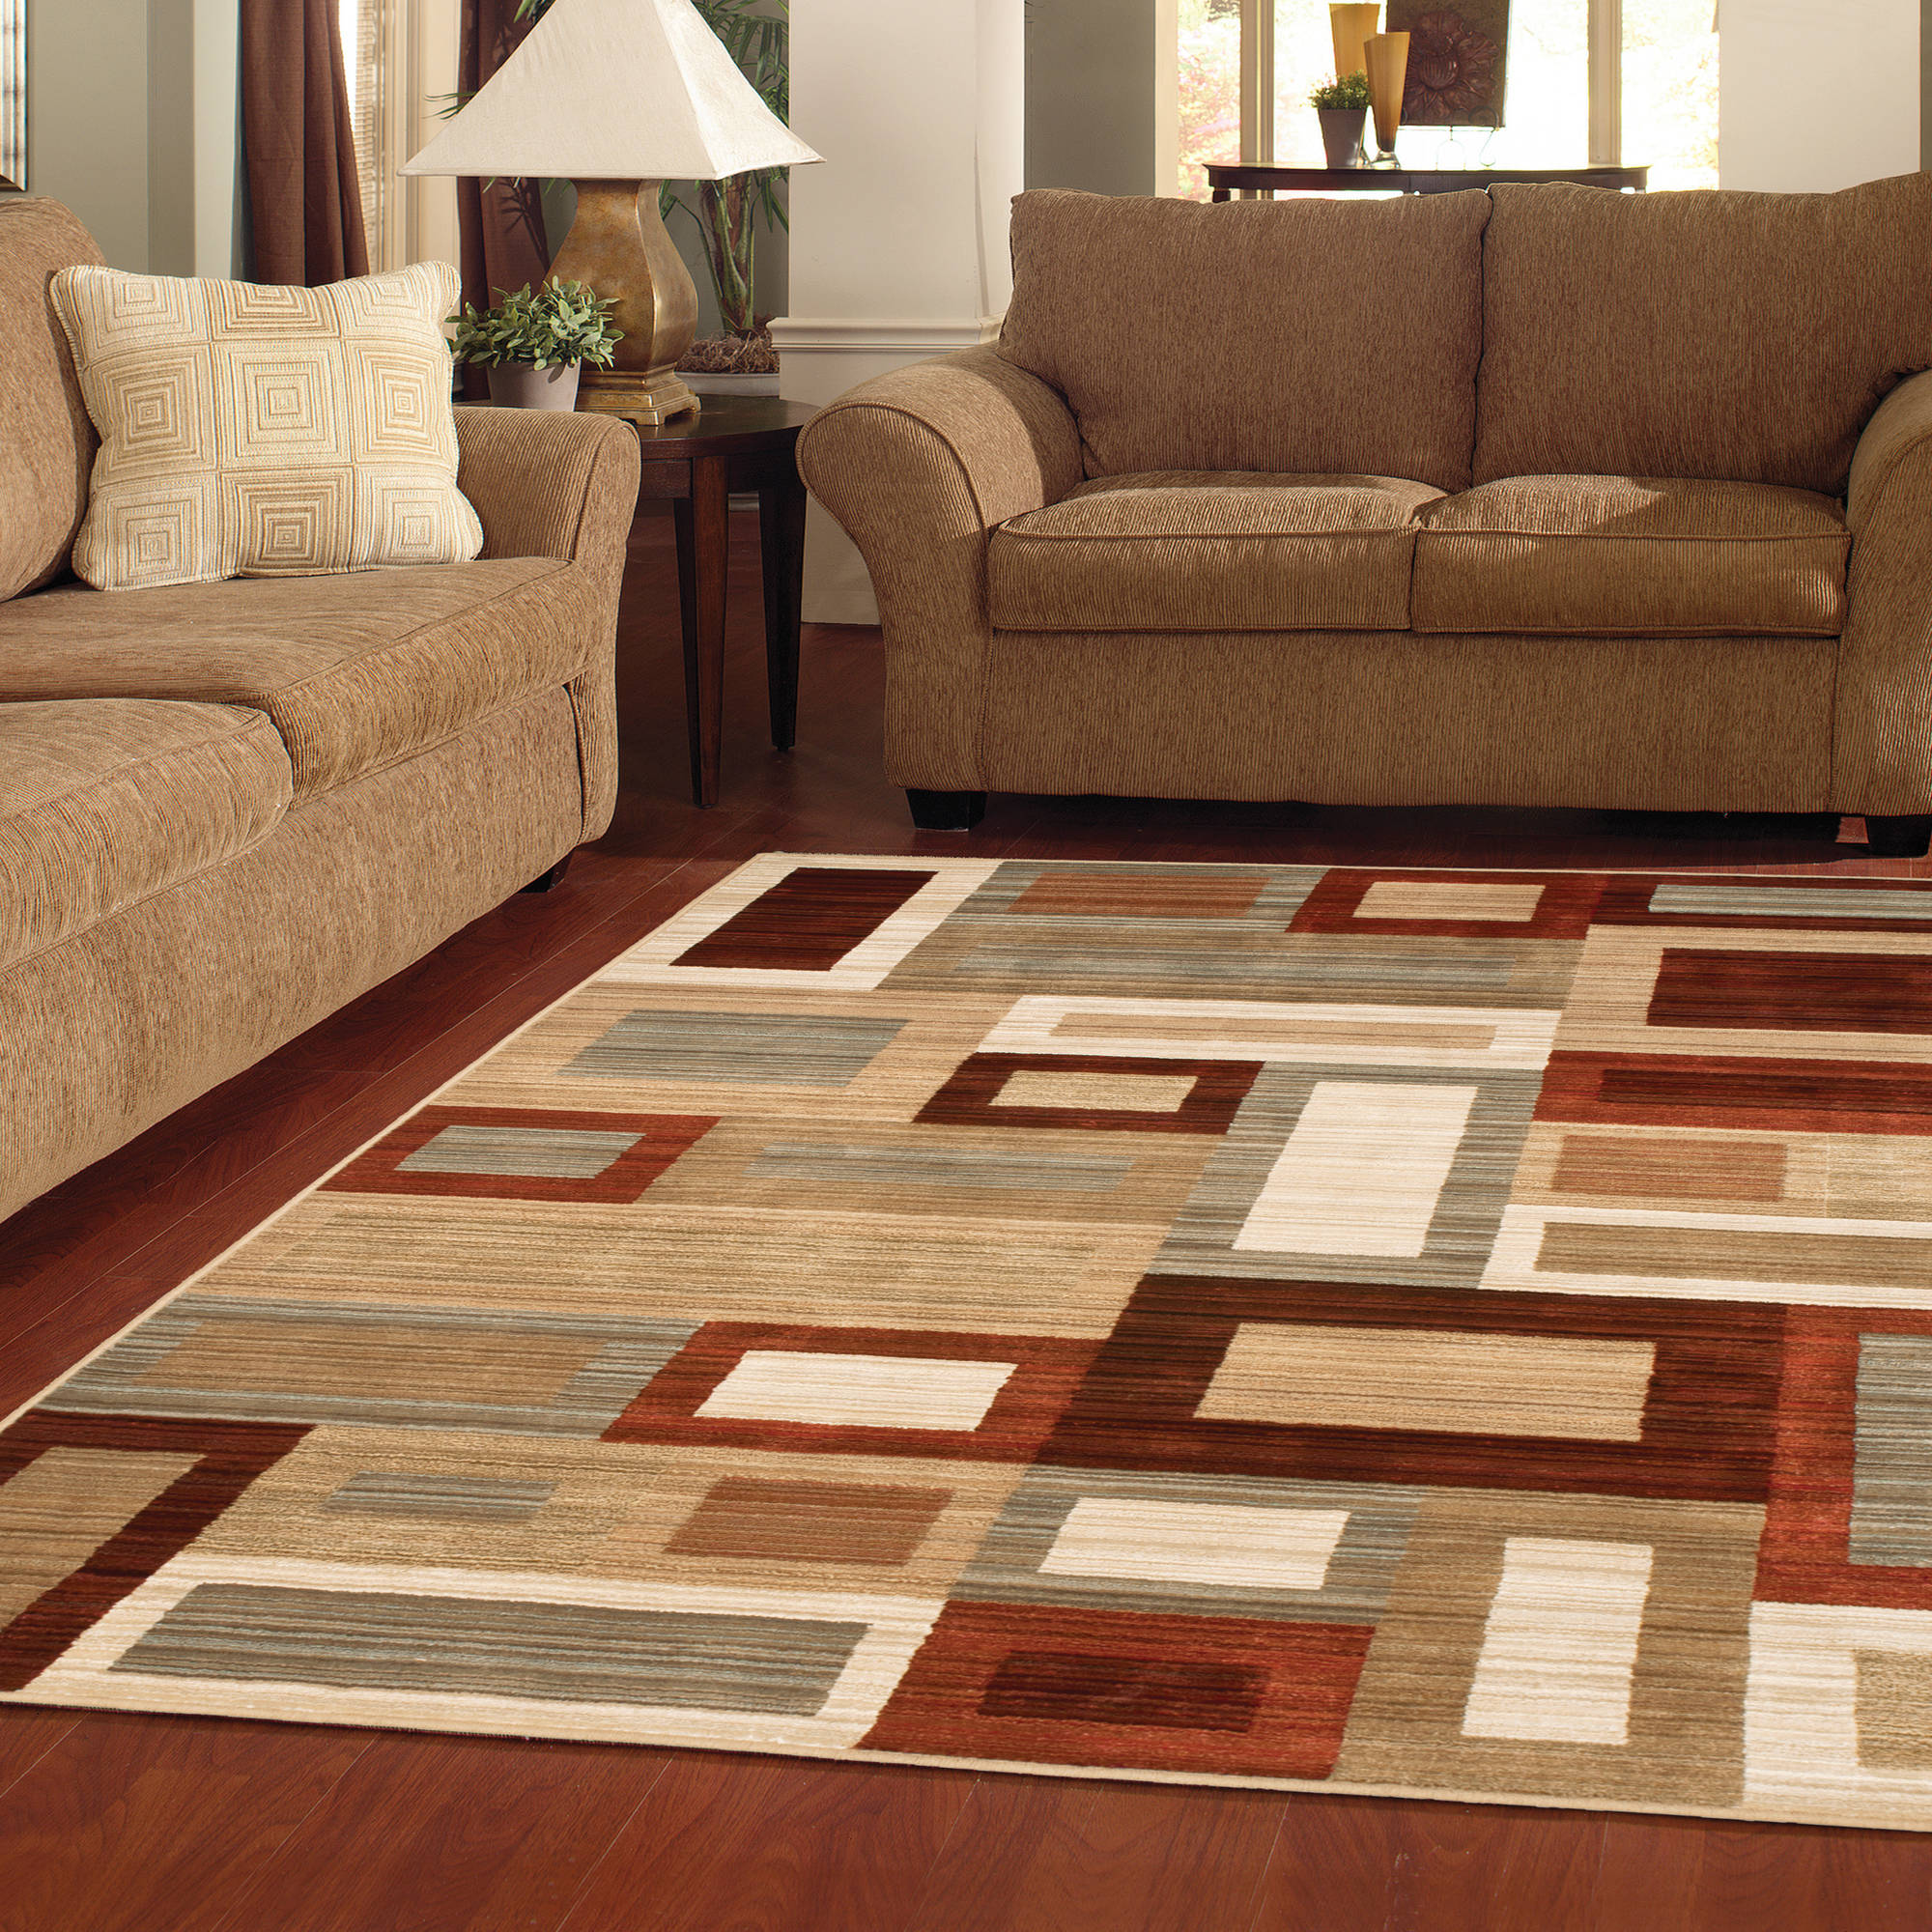 indoor rugs amazing 10 questions answered about area rugs throughout at home FEBJMSB